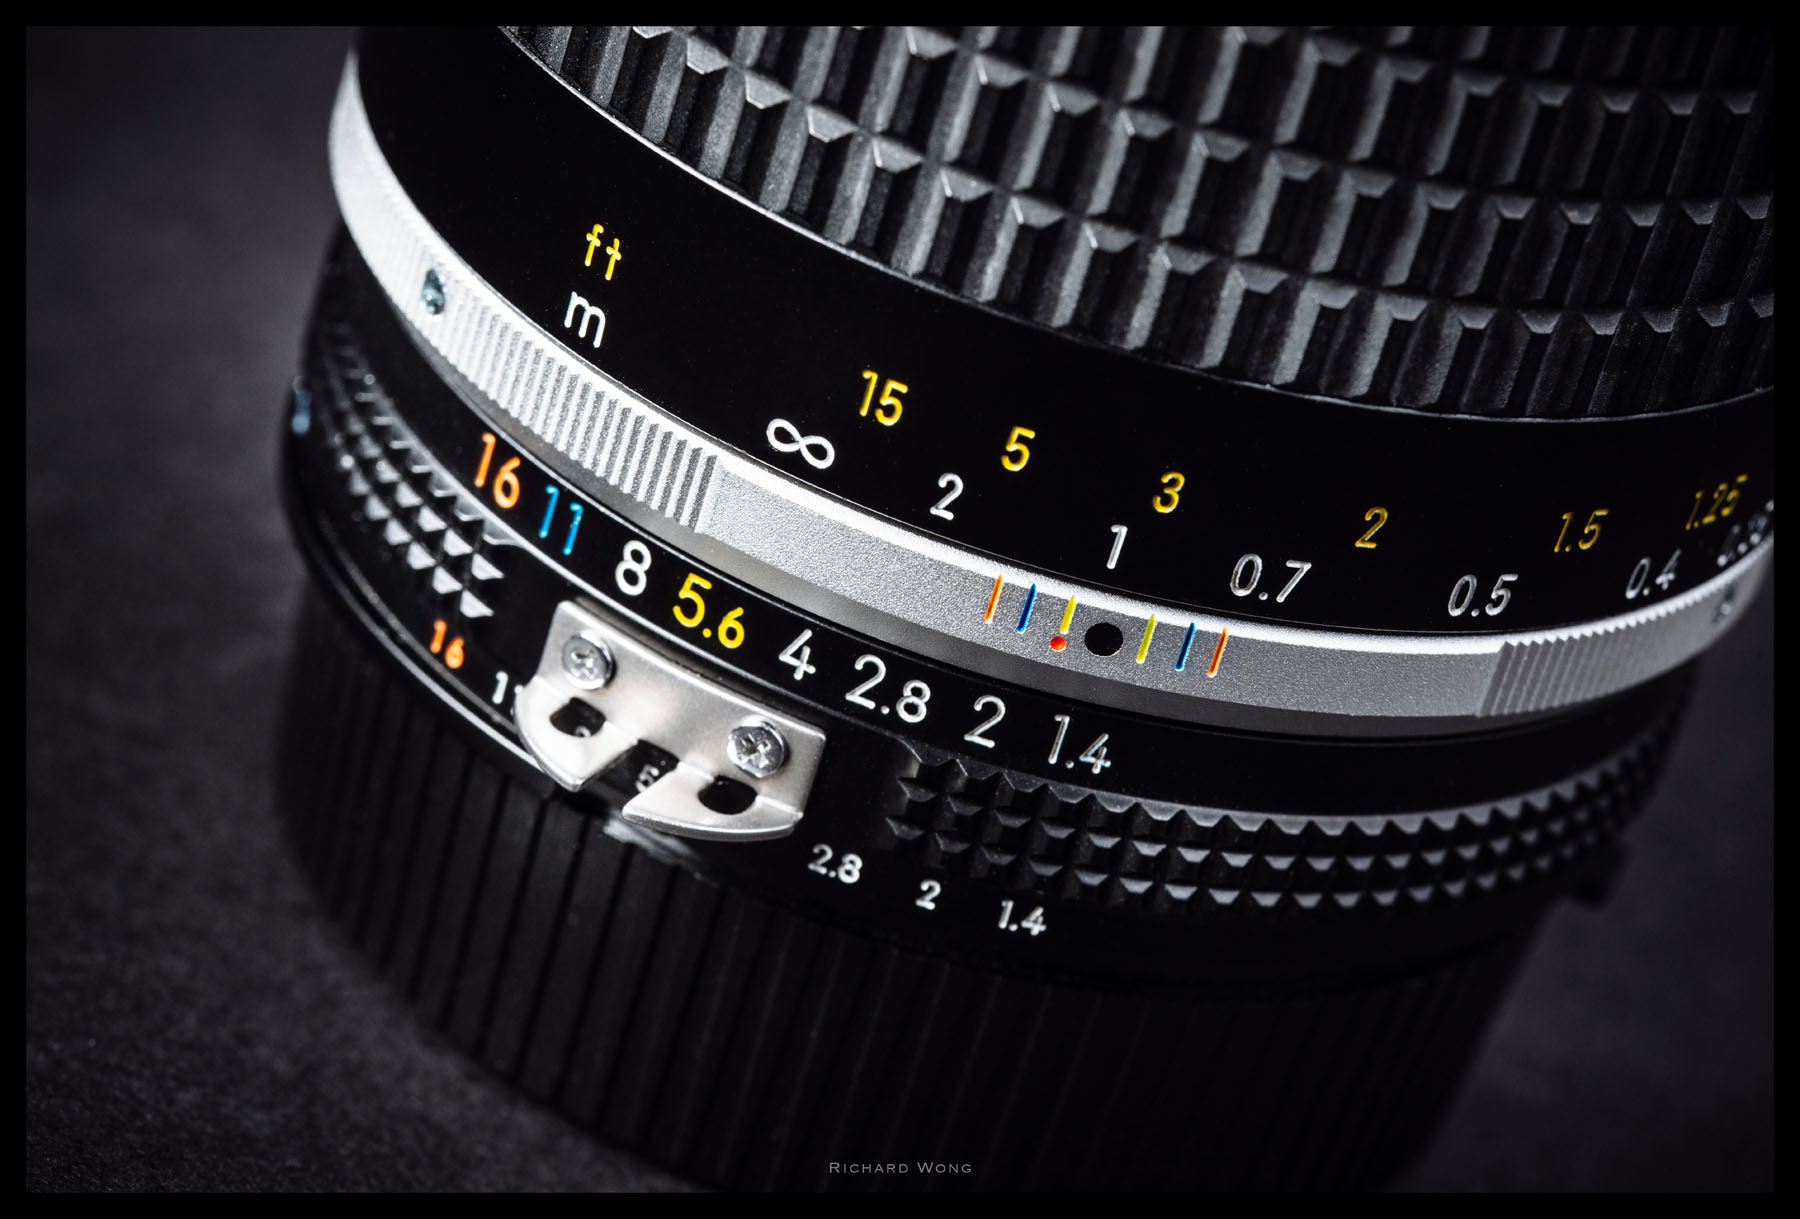 lens-35mm-shootout-review-03